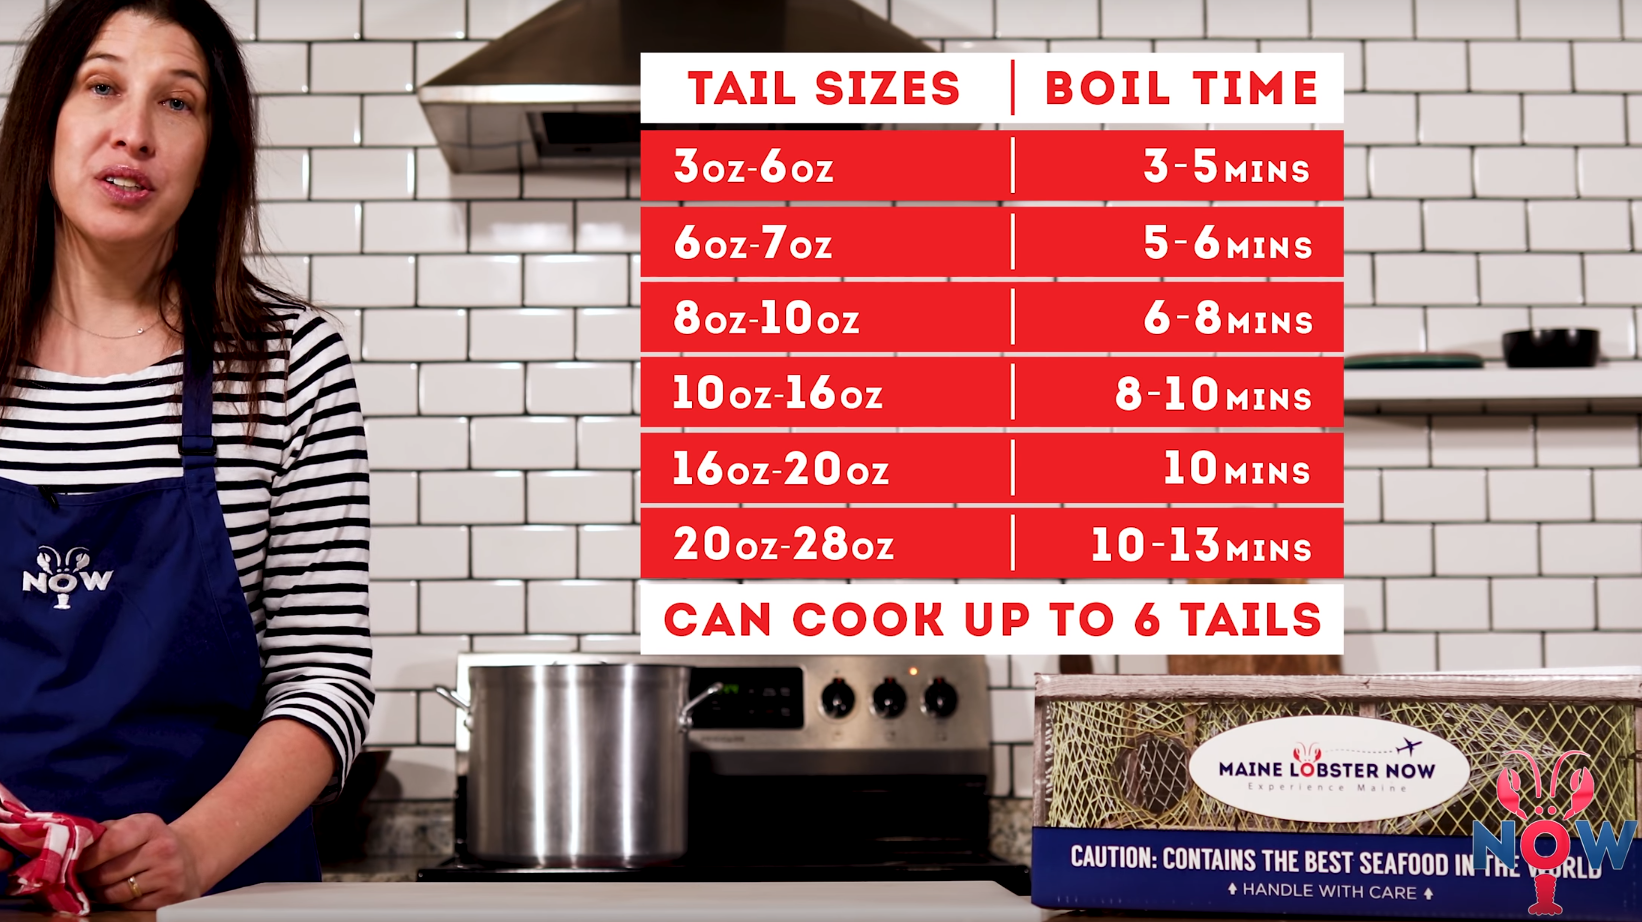 Tail sizes and boil time sheet